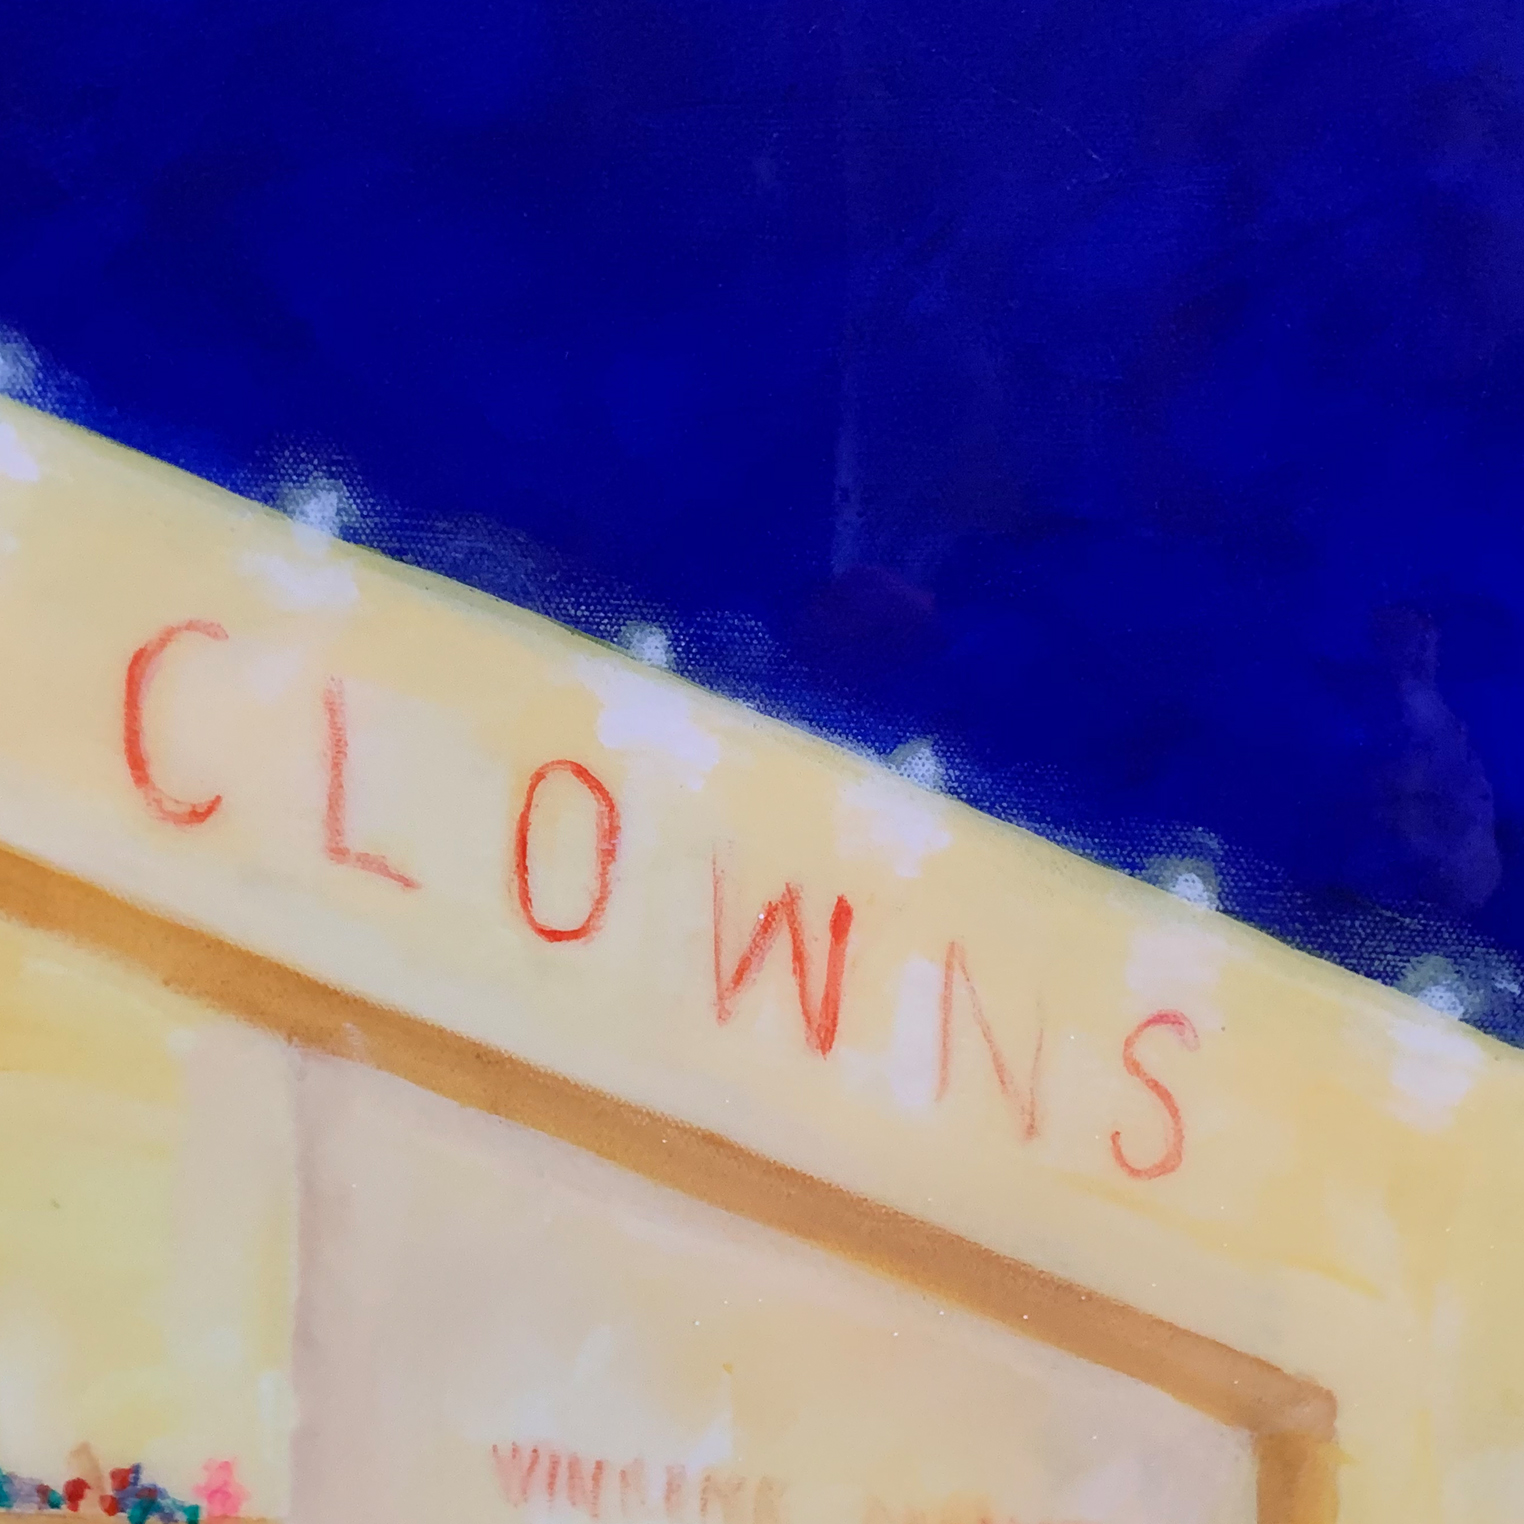 'The Clown Life' Baker Collection